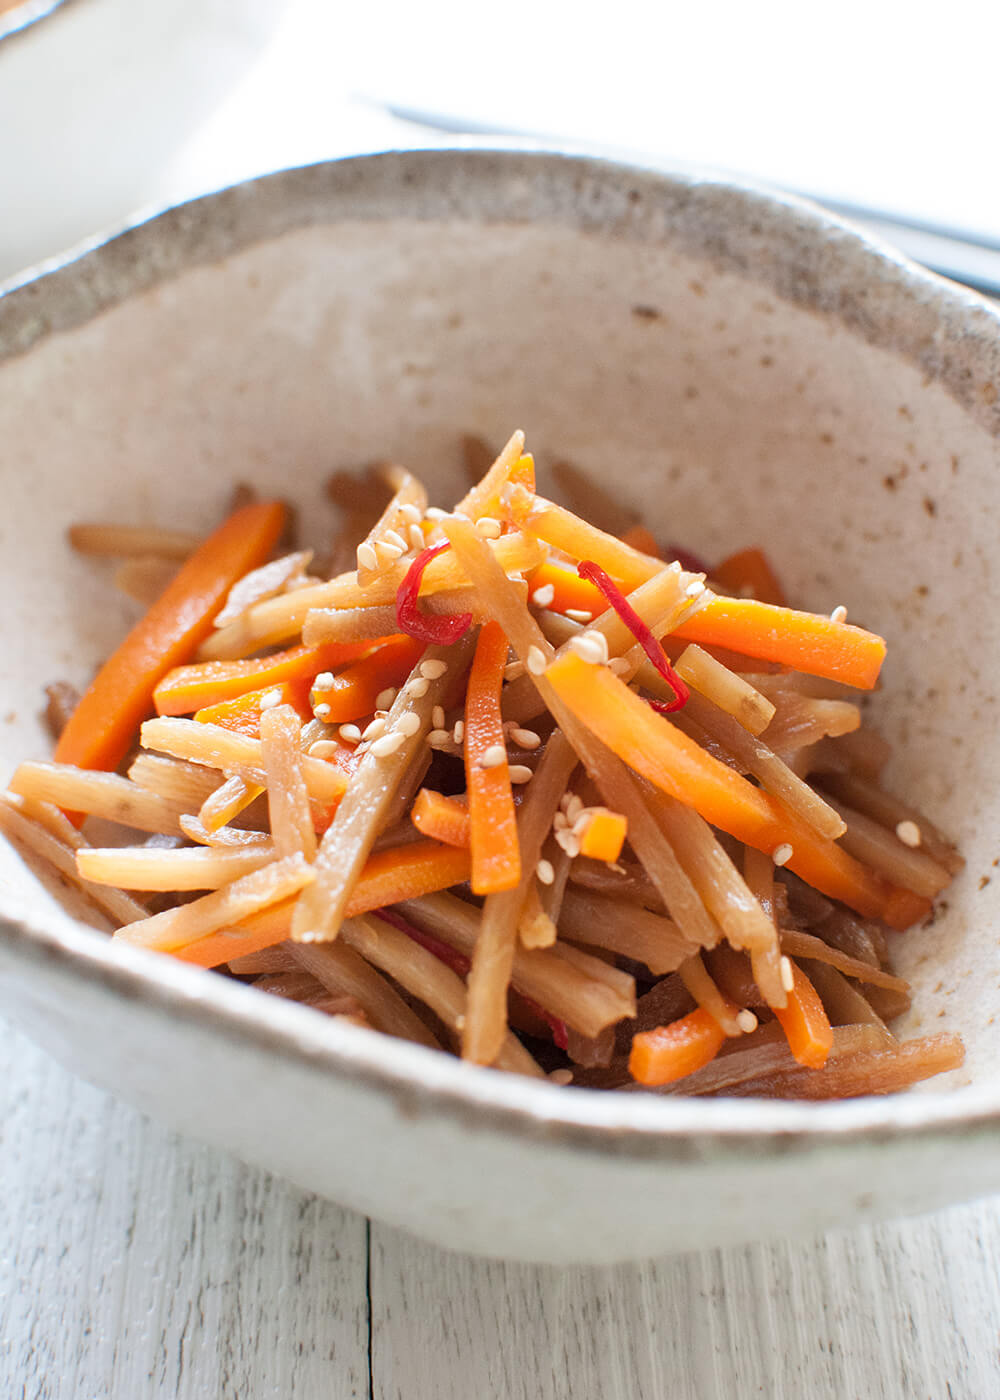 A typical Japanese home cooking dish, Braised Burdock (Kinpira Gobō) is a vegetable side dish. Burdock root and carrot are cut into matchsticks and cooked in a slightly sweet soy sauce. It is very fast to make and can be made ahead of time.